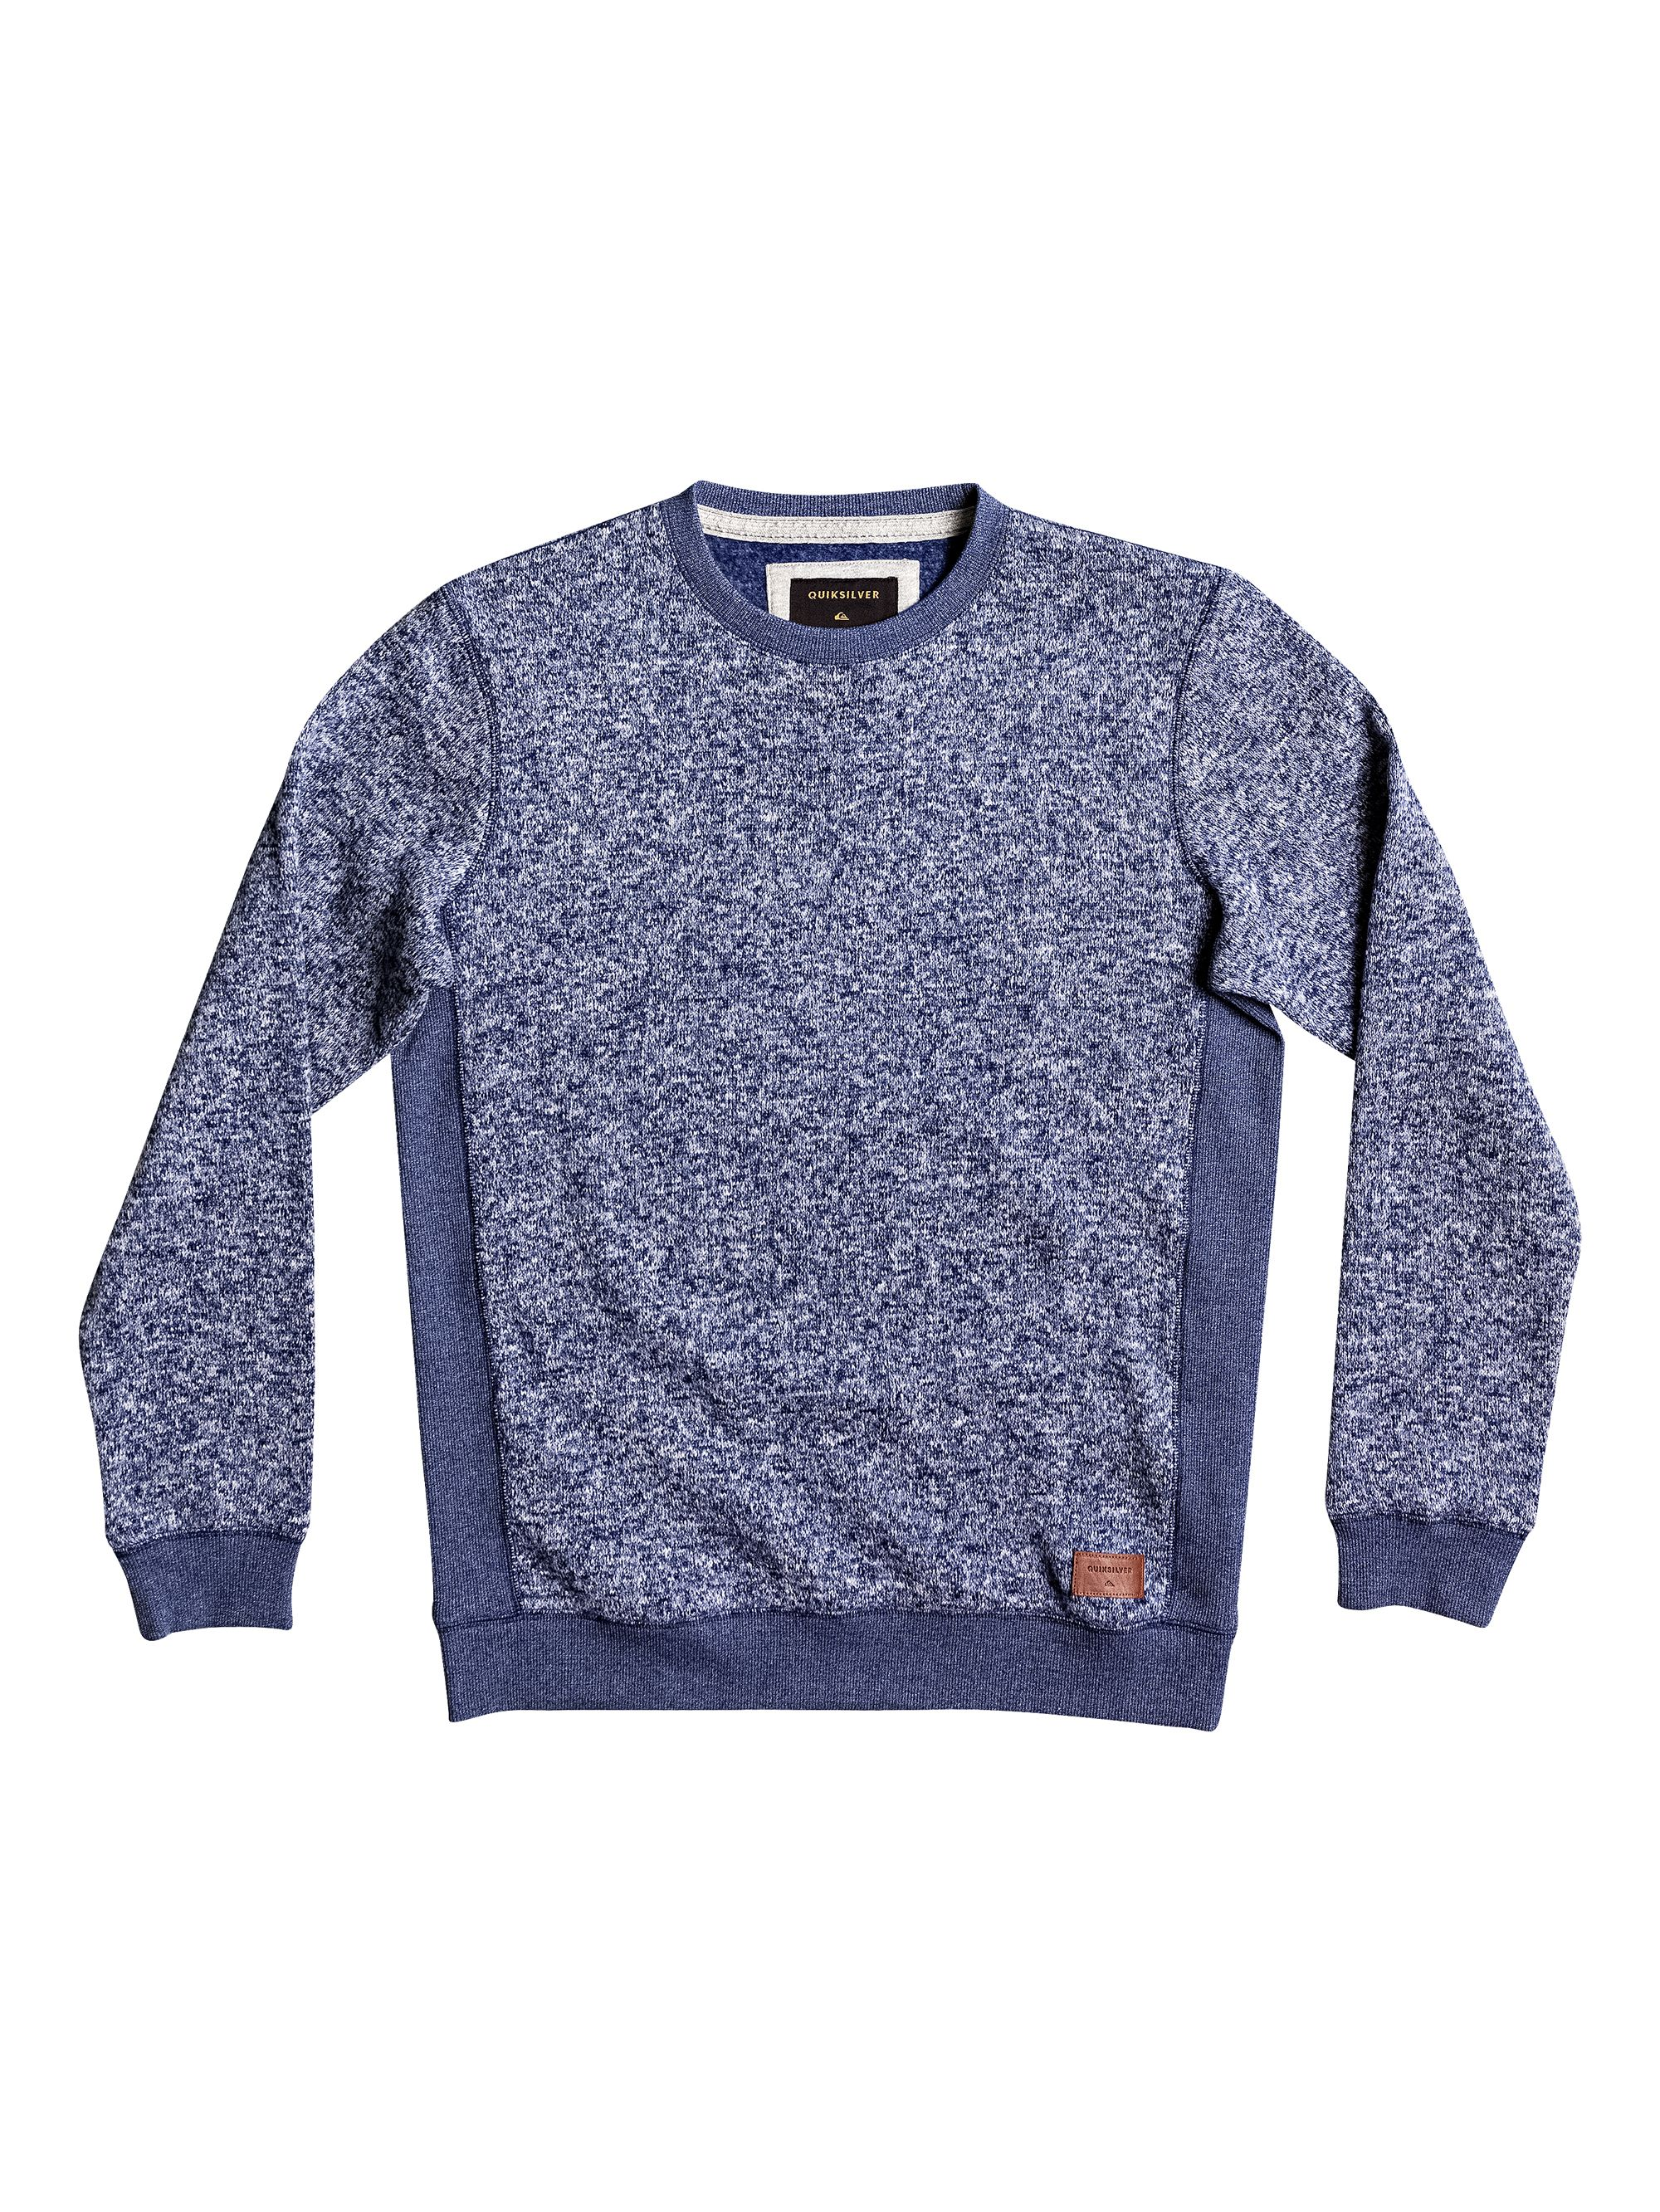 Men's Quiksilver Quiksilver Keller Fleece Sweatshirt, Blue